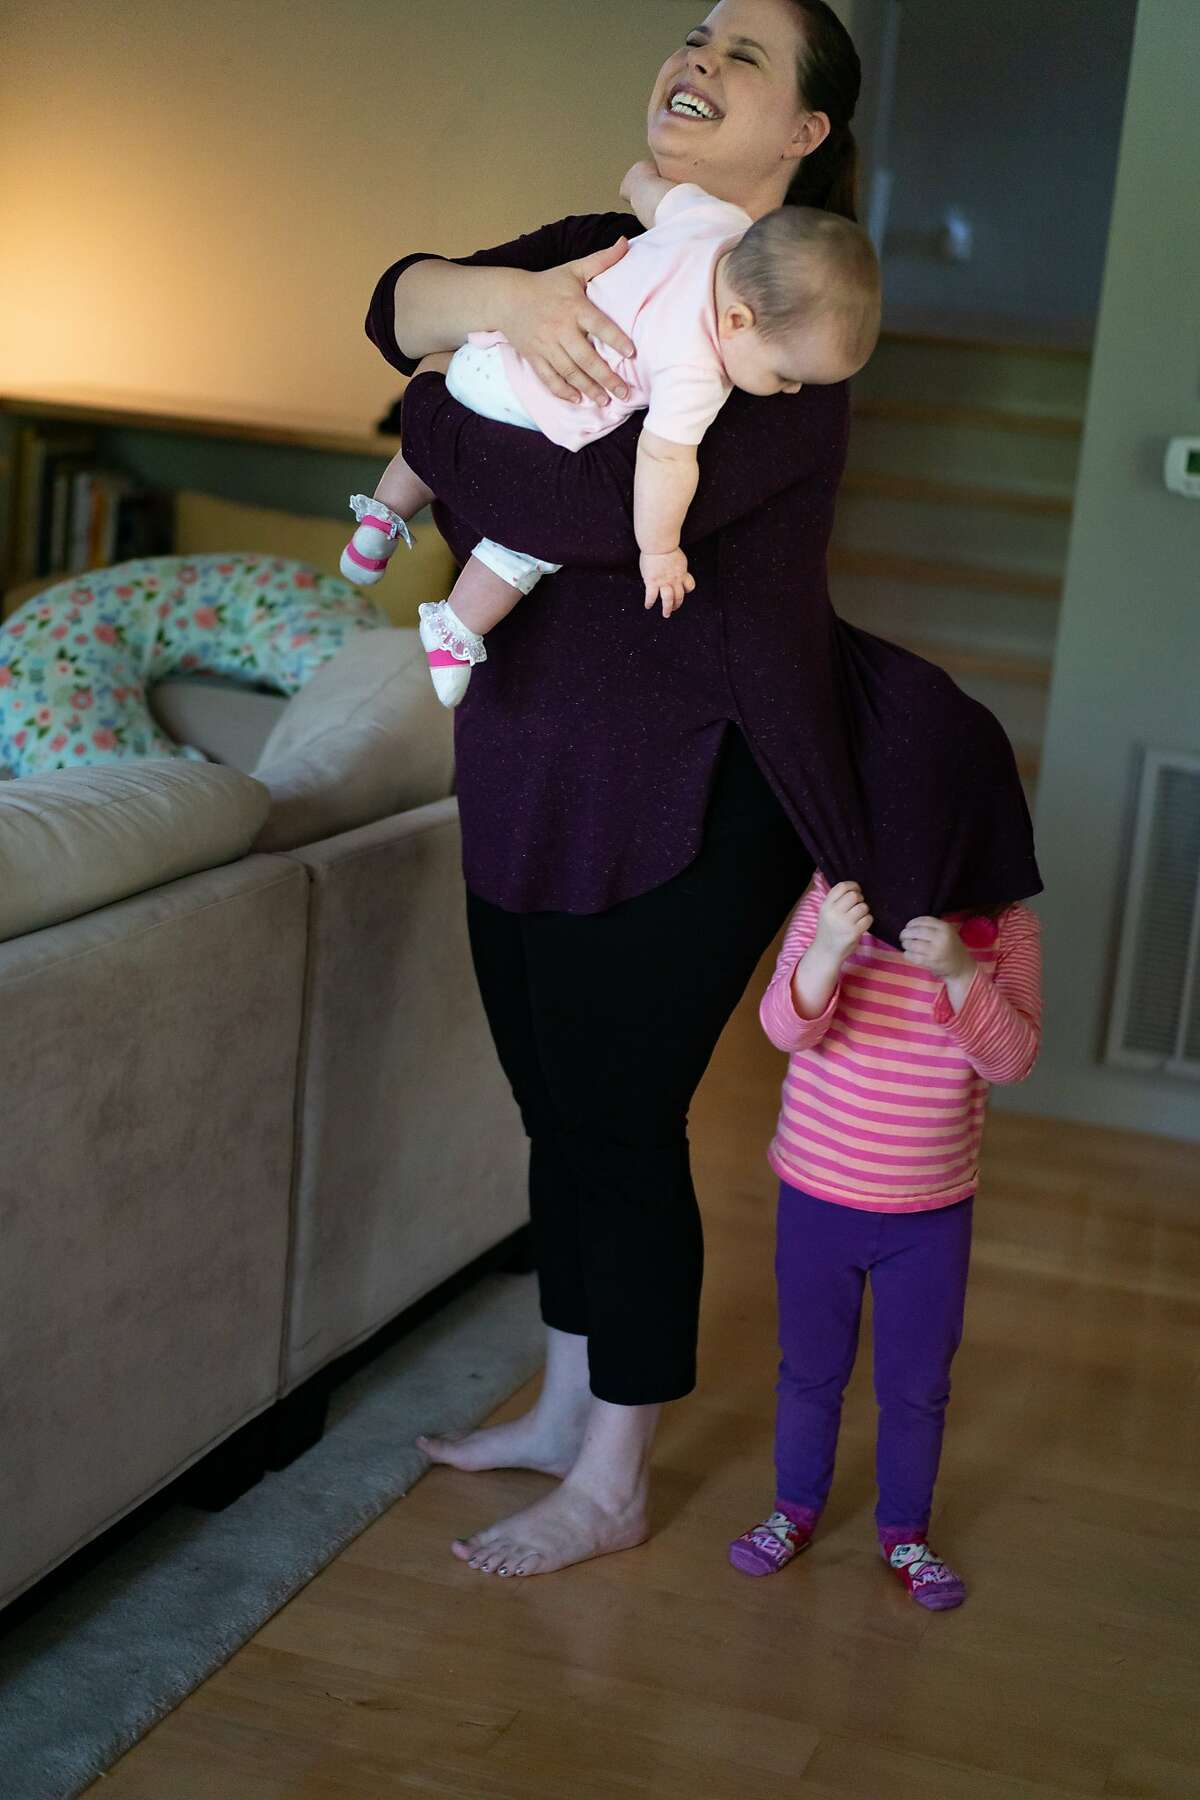 Tilly Gorback, 3, playing peek-a-boo with Cecelia, 7-months, being held by mother, Gennie Gorback on Friday, Oct. 11, 2019 in Orinda, Calif.